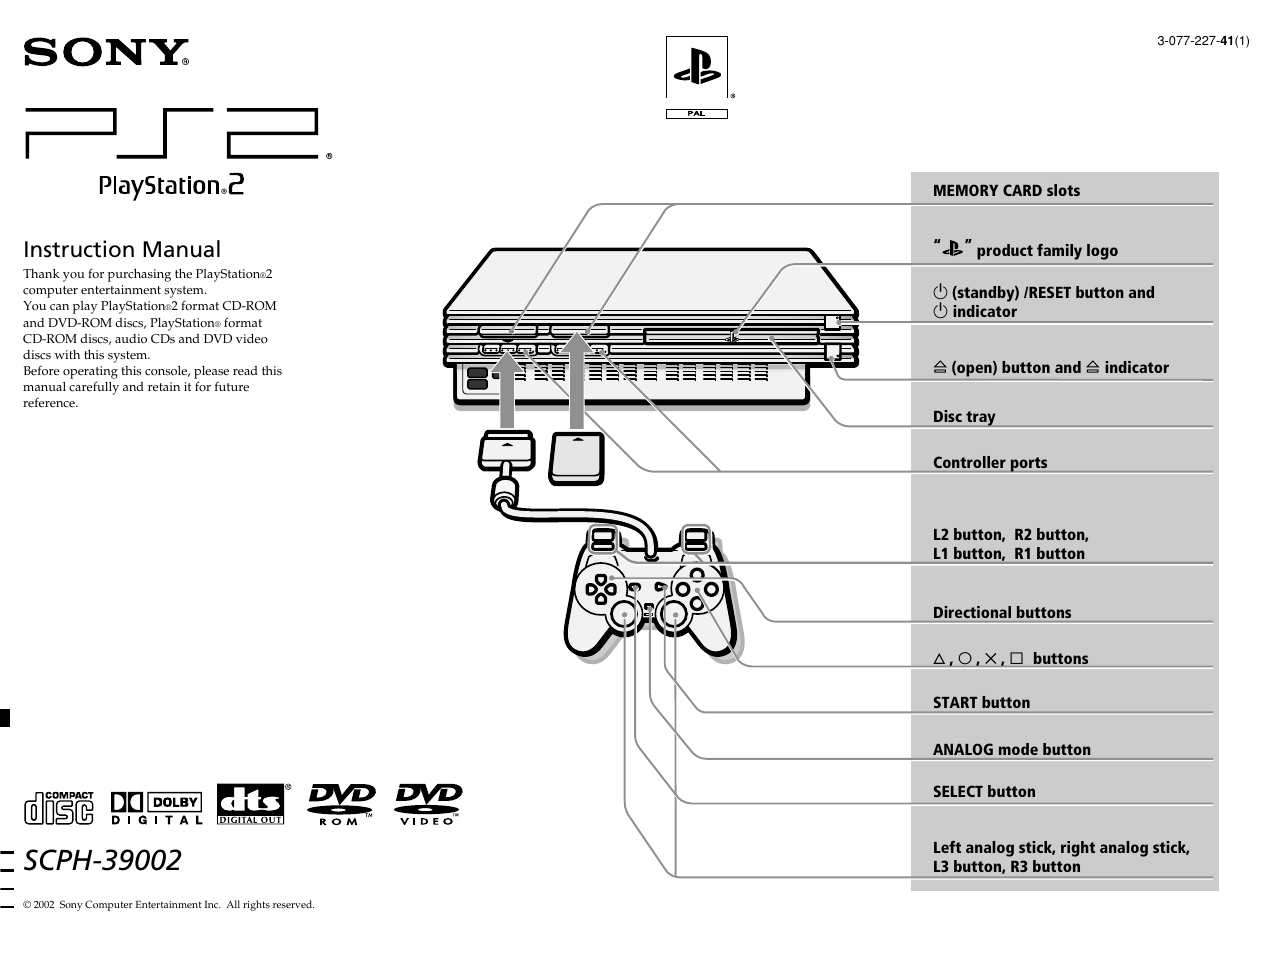 sony ps2 scph 39002 user manual 24 pages rh manualsdir com Sony Manuals PDF sony ps2 user manual pdf